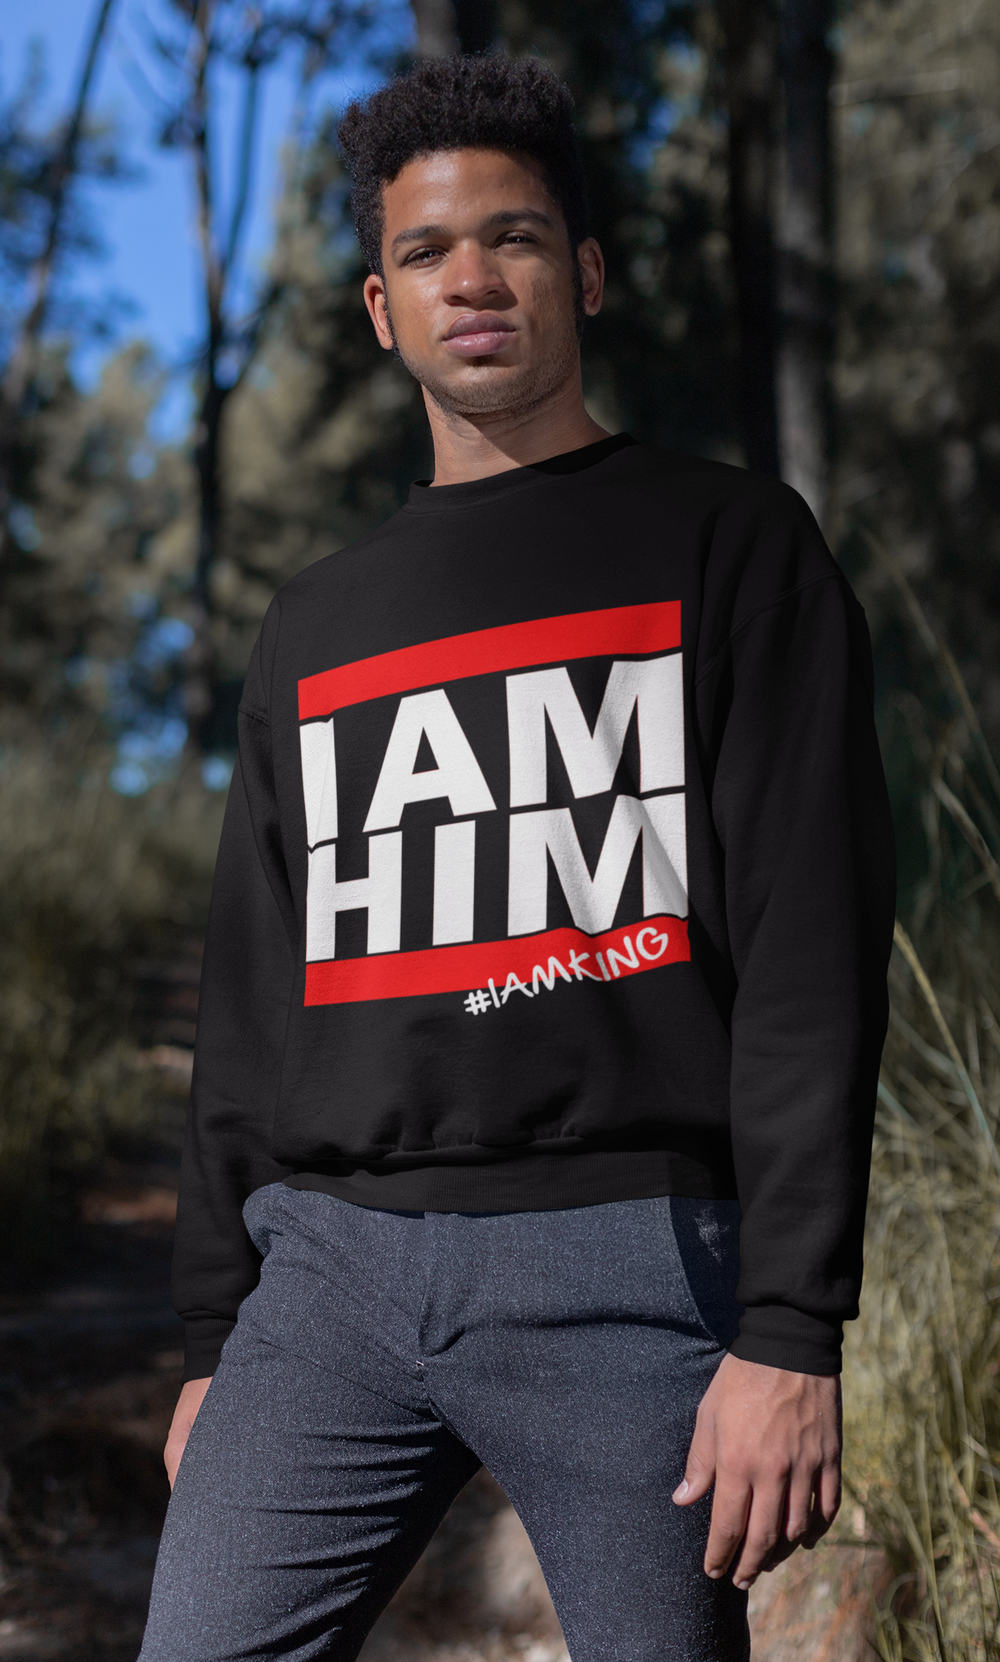 I AM HIM X I AM KING Casual Mens Crewneck Sweatshirt - Black - I AM HER Apparel, LLC